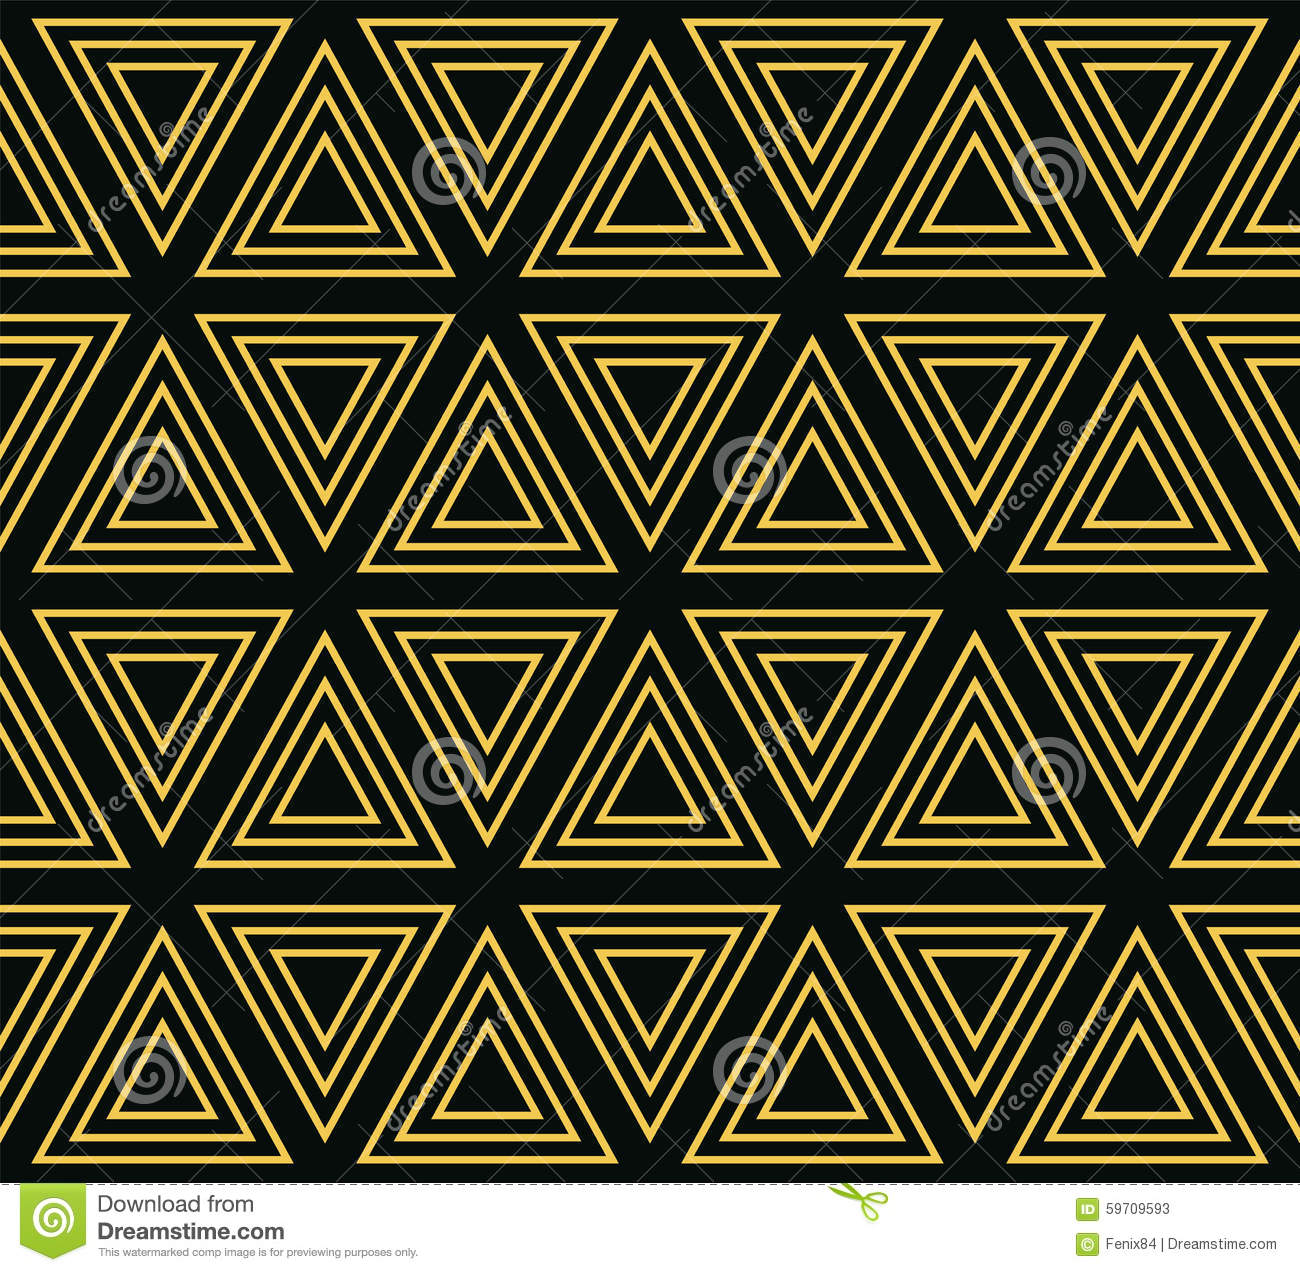 Seamless Geometric Pattern Of Concentric Triangles